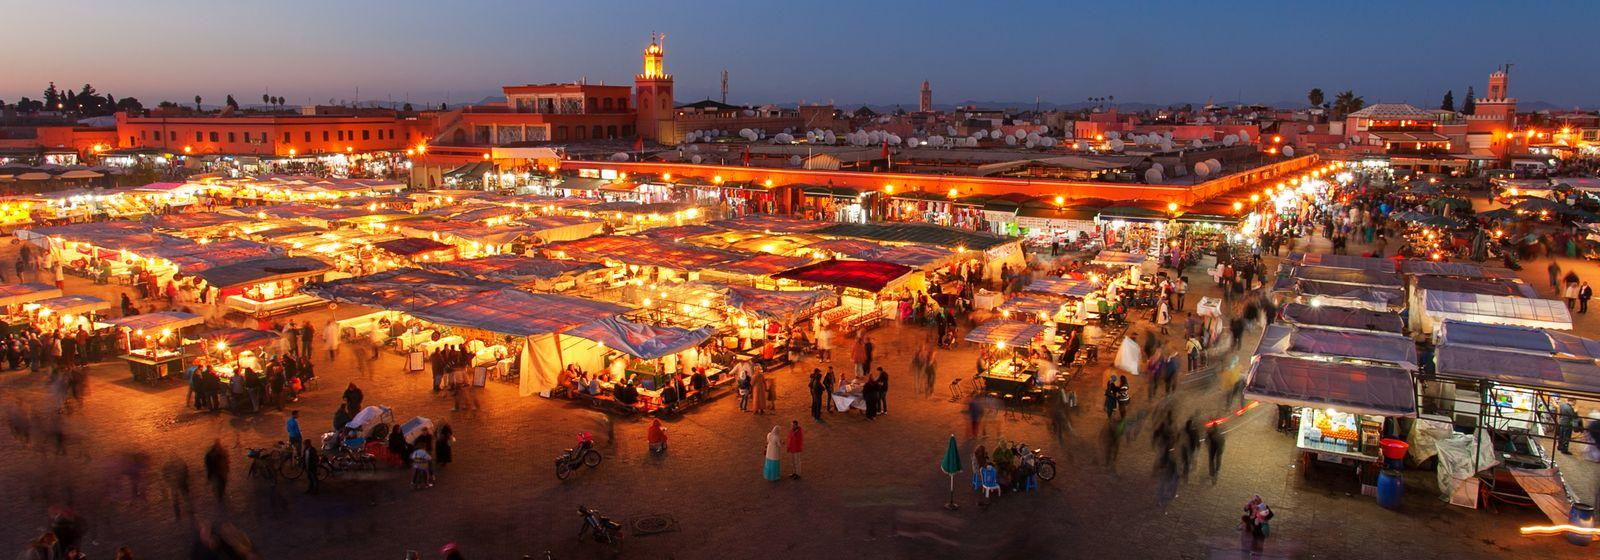 Jemaa El Fna Square by Night, Marrakech